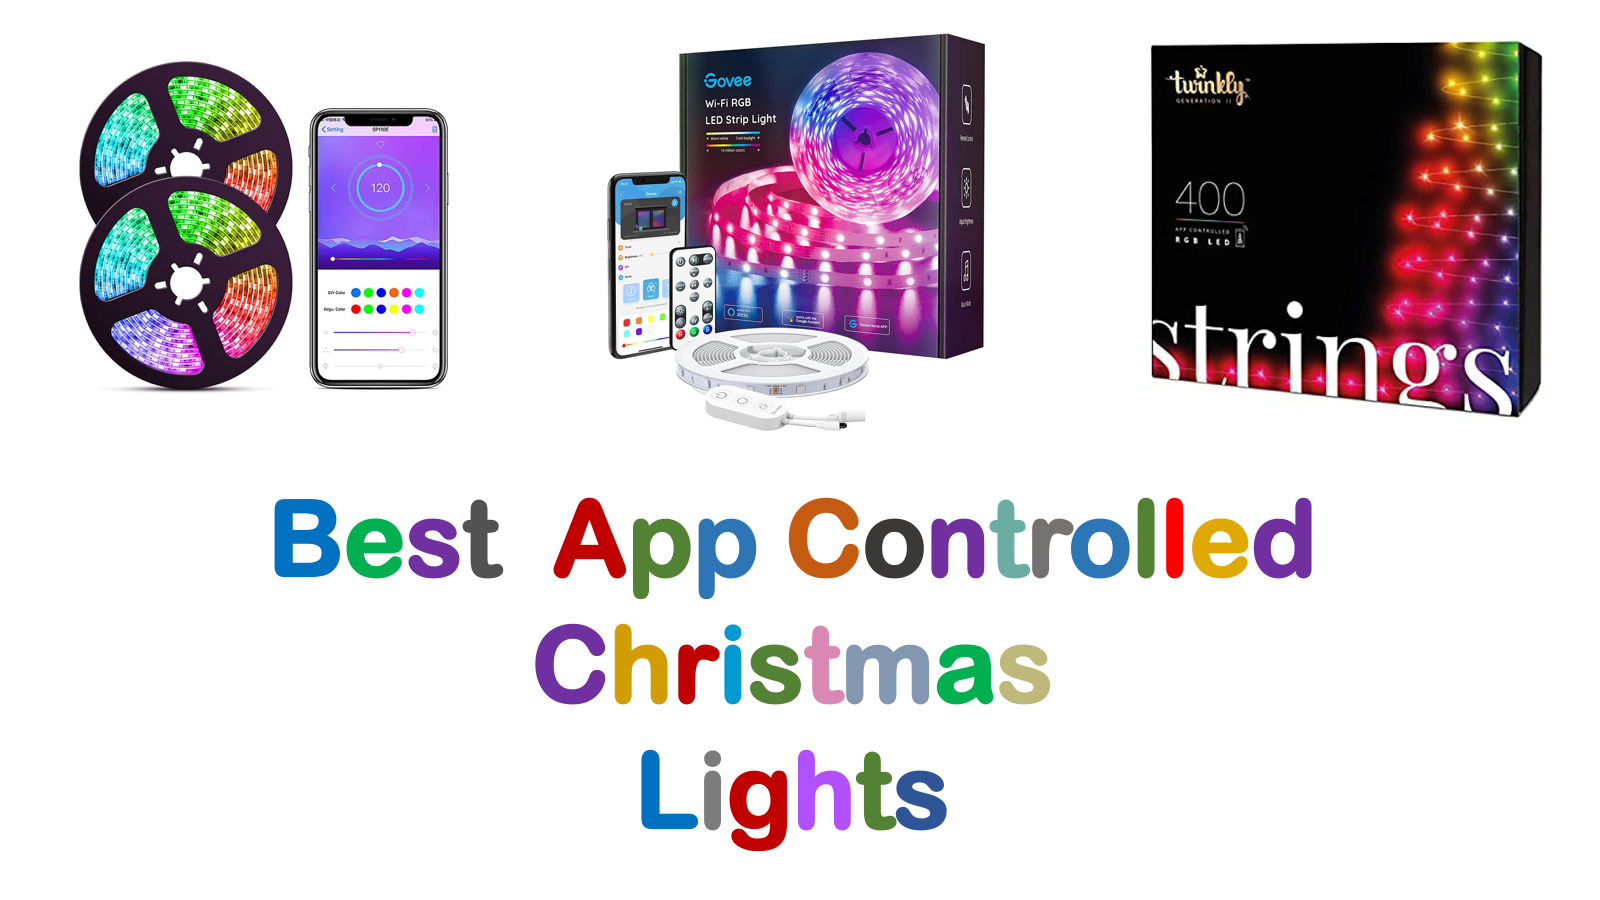 Best App Controlled Christmas Lights